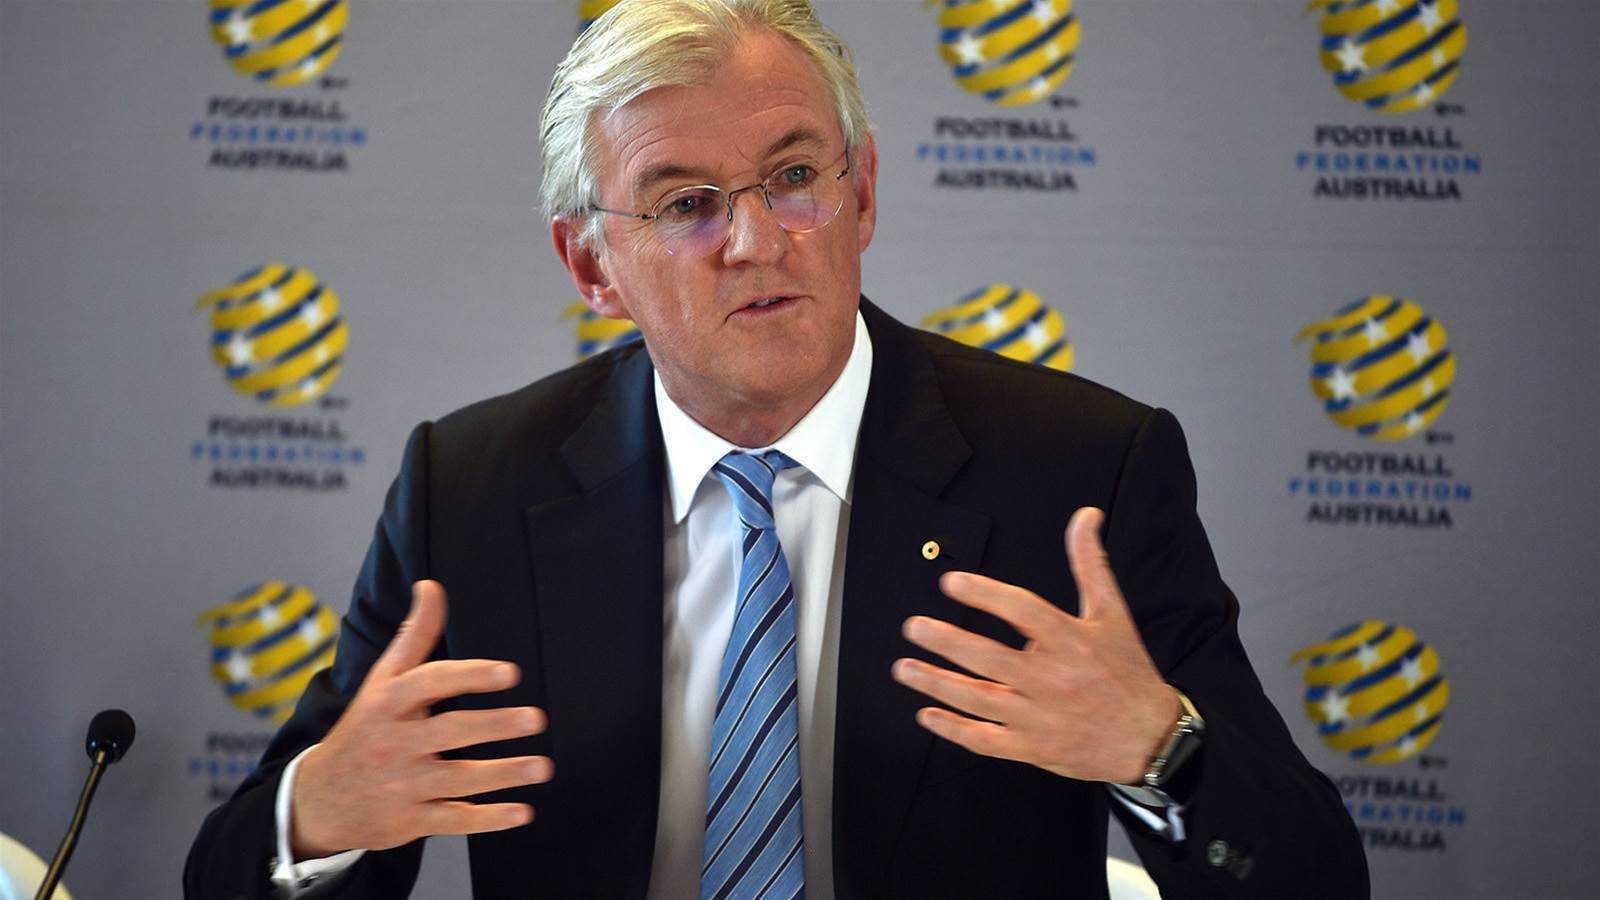 Lowy's all-in quit ploy to put pressure on FFA reforms